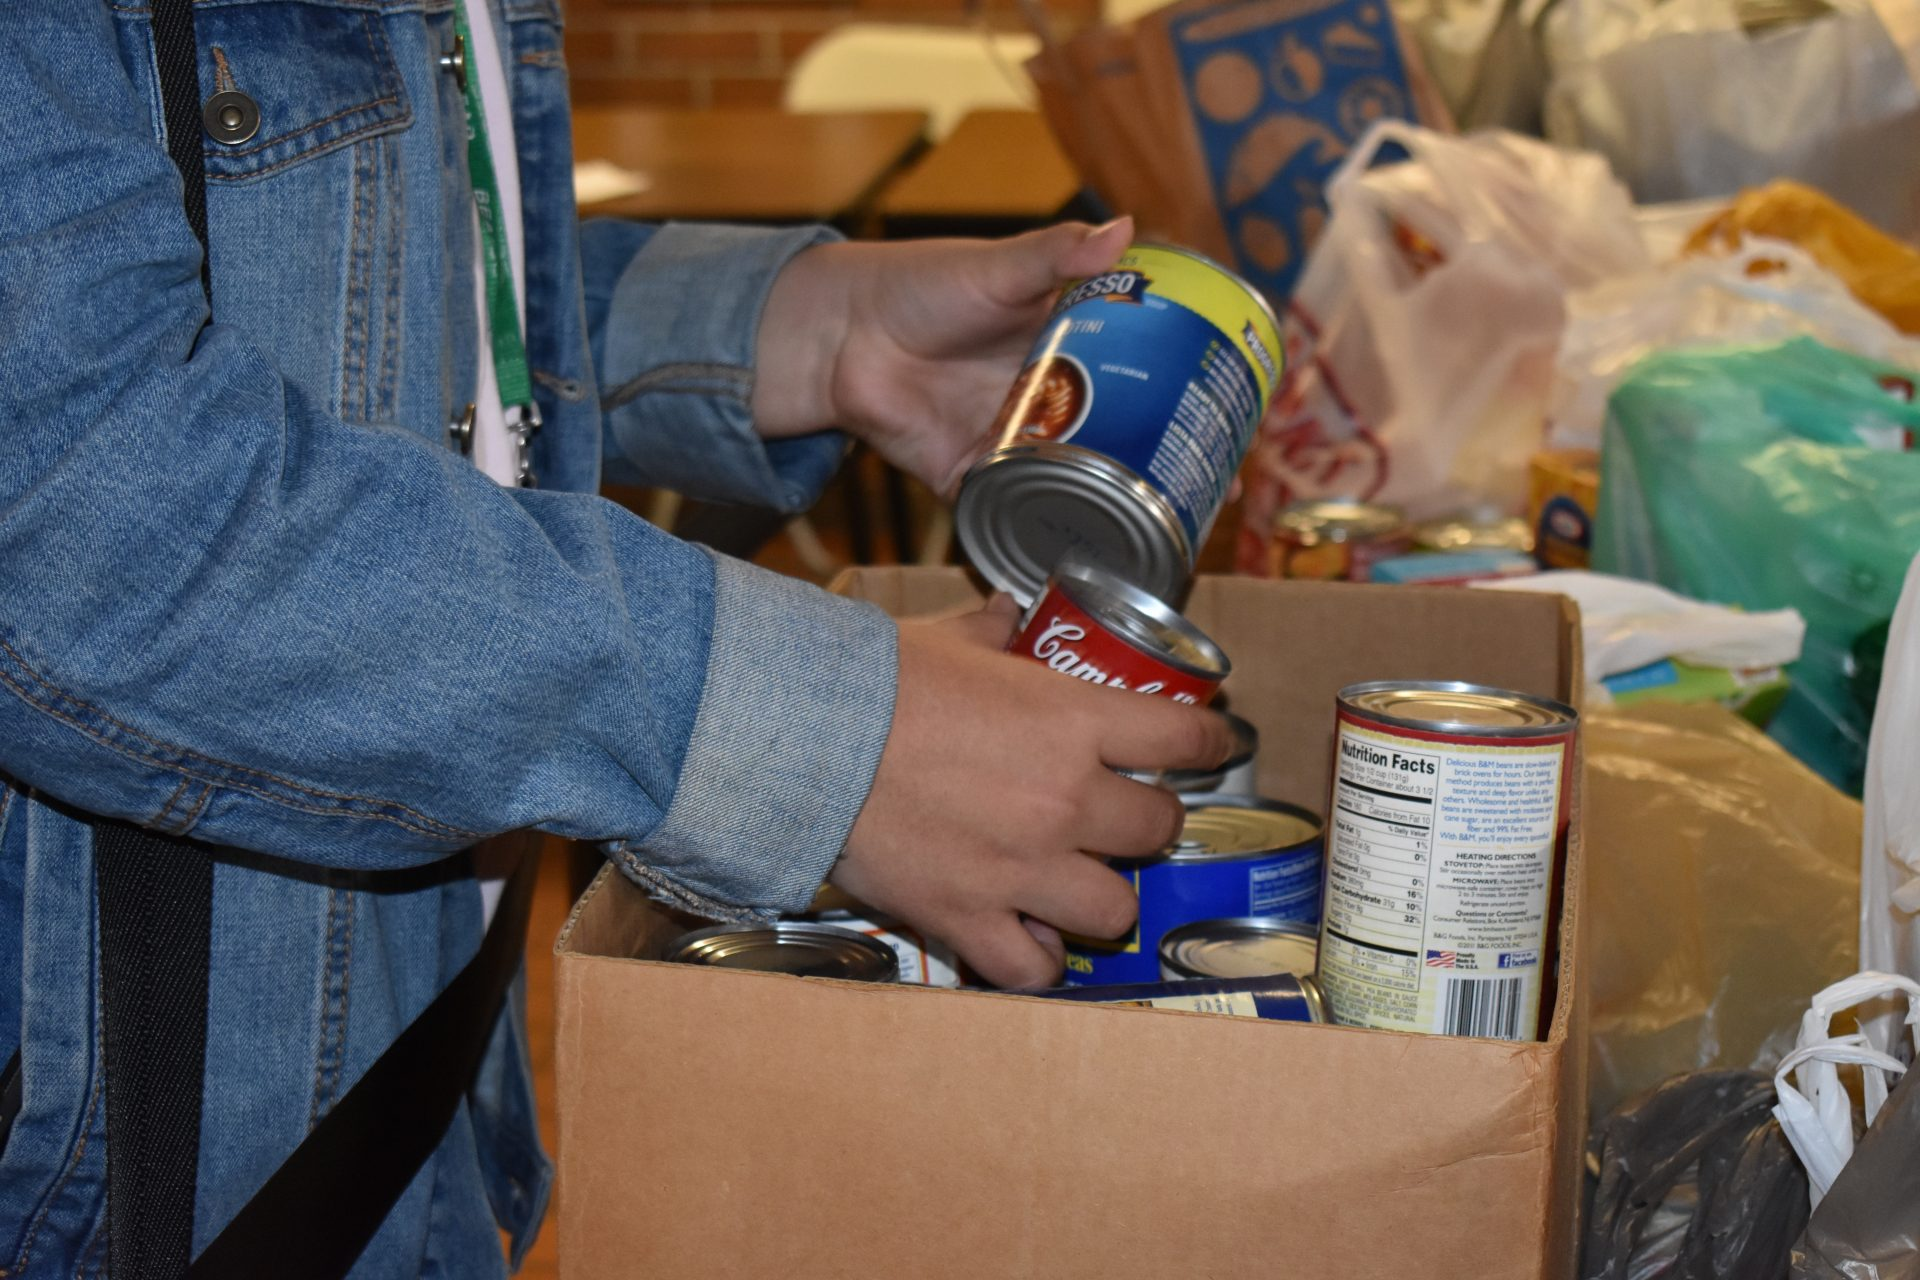 Student Holding Cans